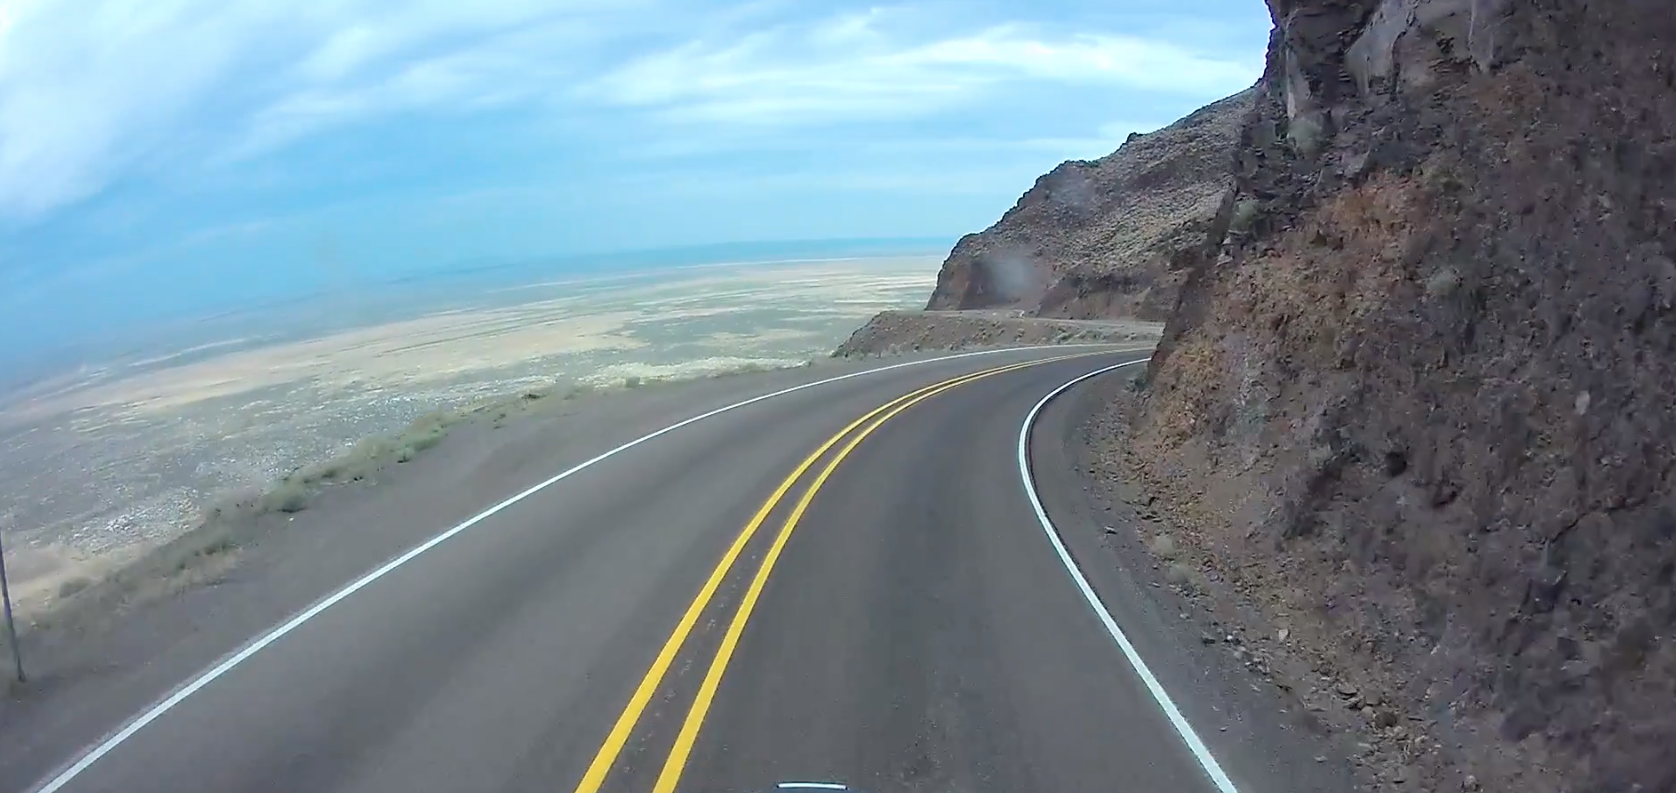 The Doherty Slide Section Of Oregon Route 140 Is White Knuckle Driving In Oregon That's Not For The Faint Of Heart